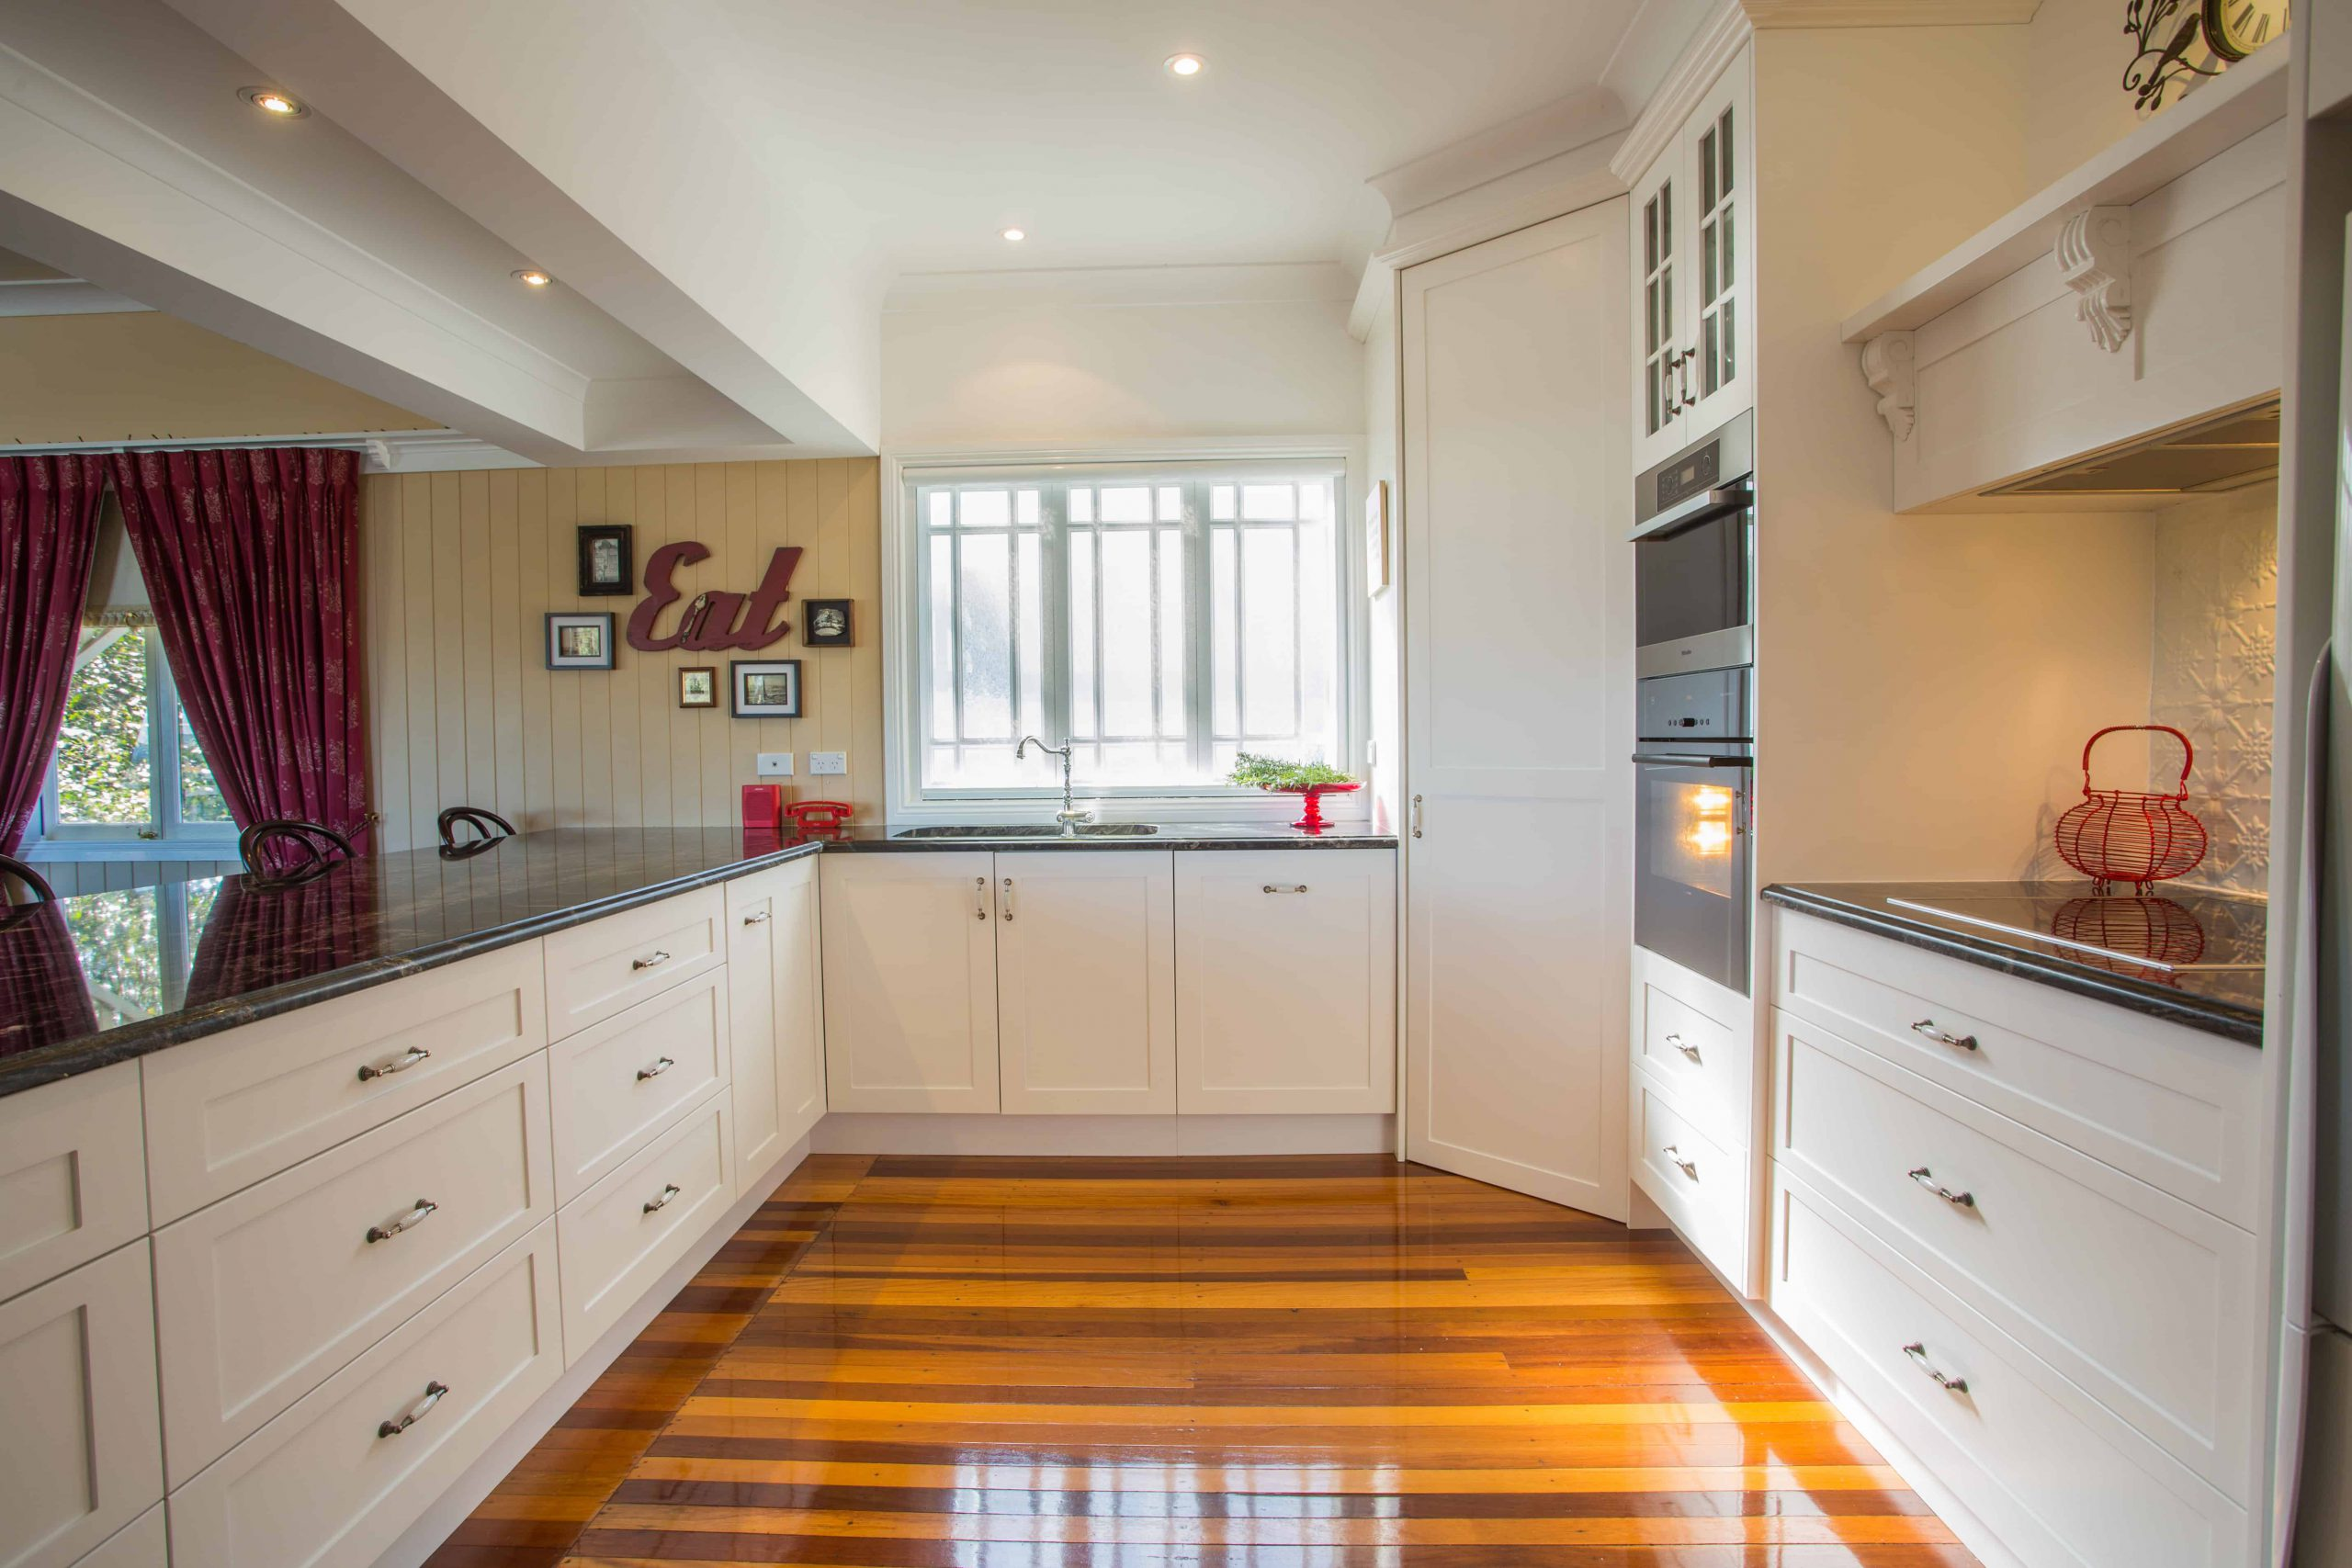 7 Kitchen Design Trends To Look Out For In 2017